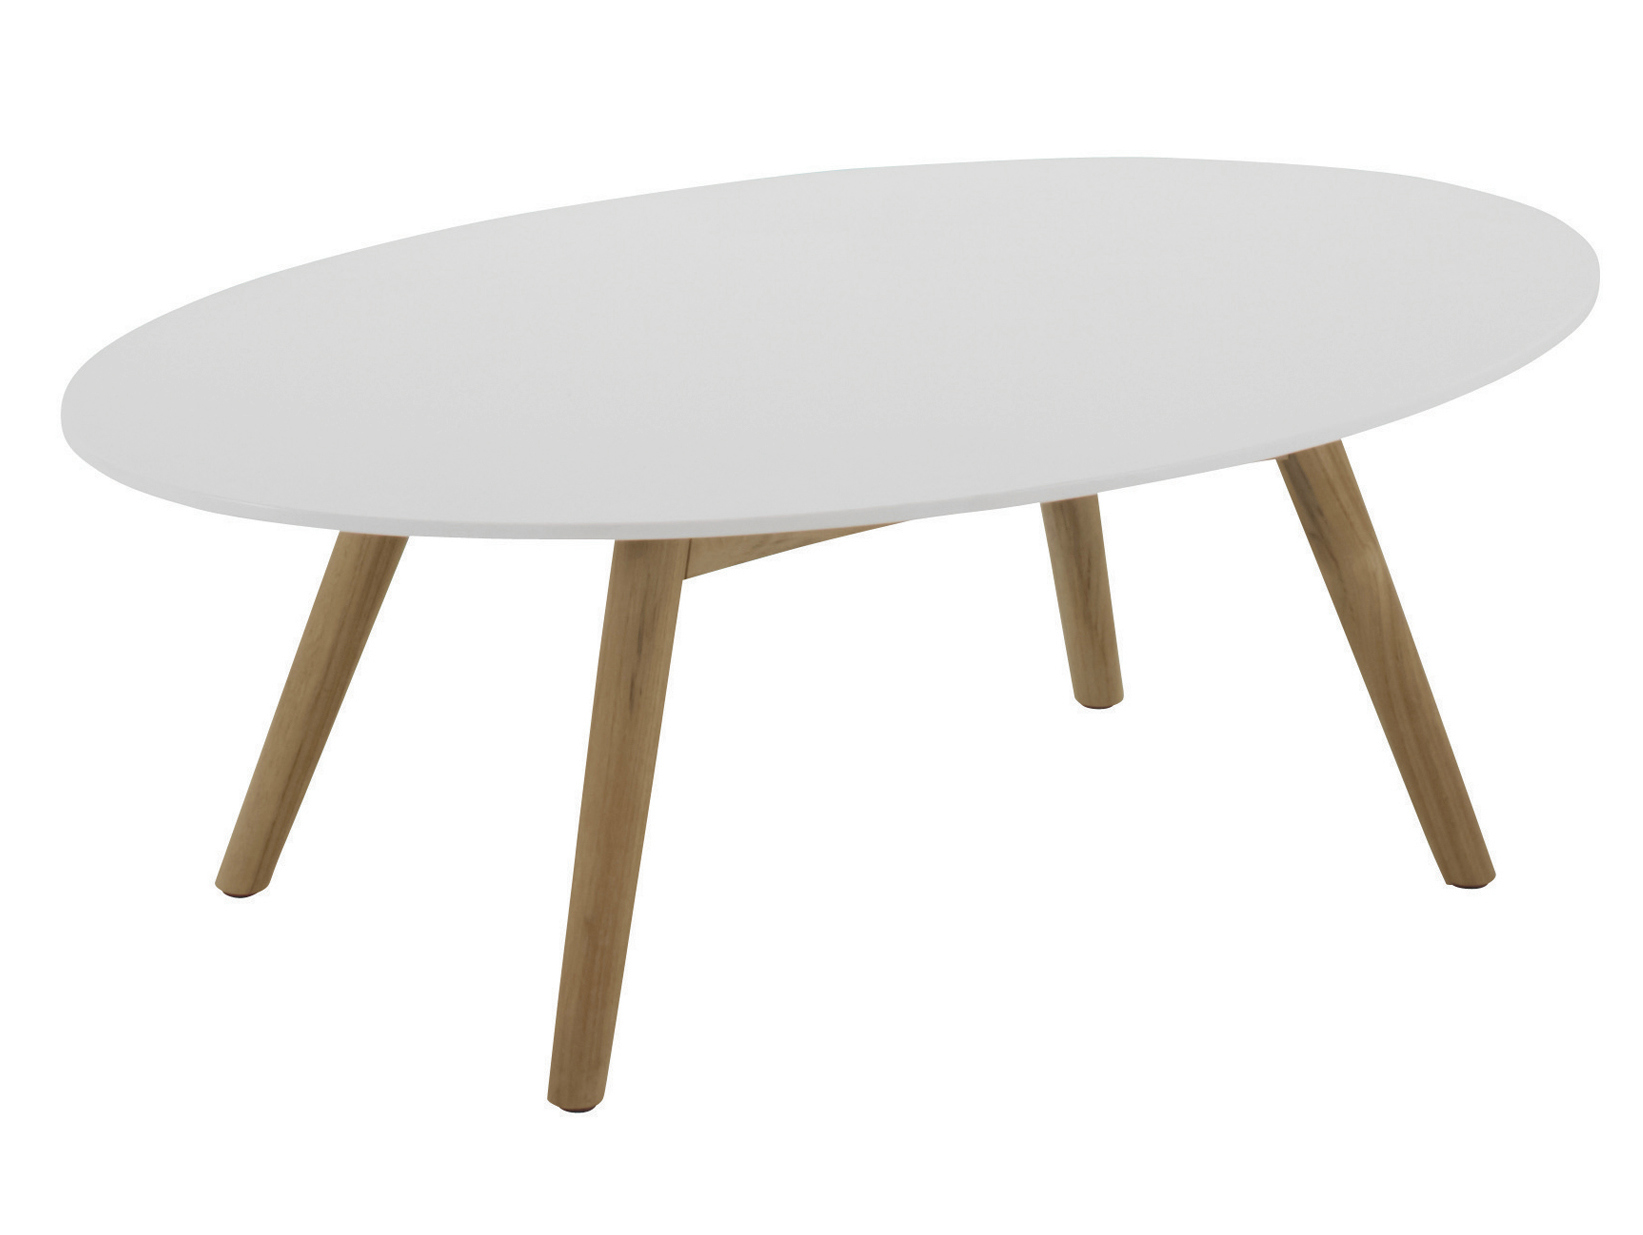 Table Basse De Jardin Ovale En Pierre Acrylique Collection Dansk By Gloster Design Povl